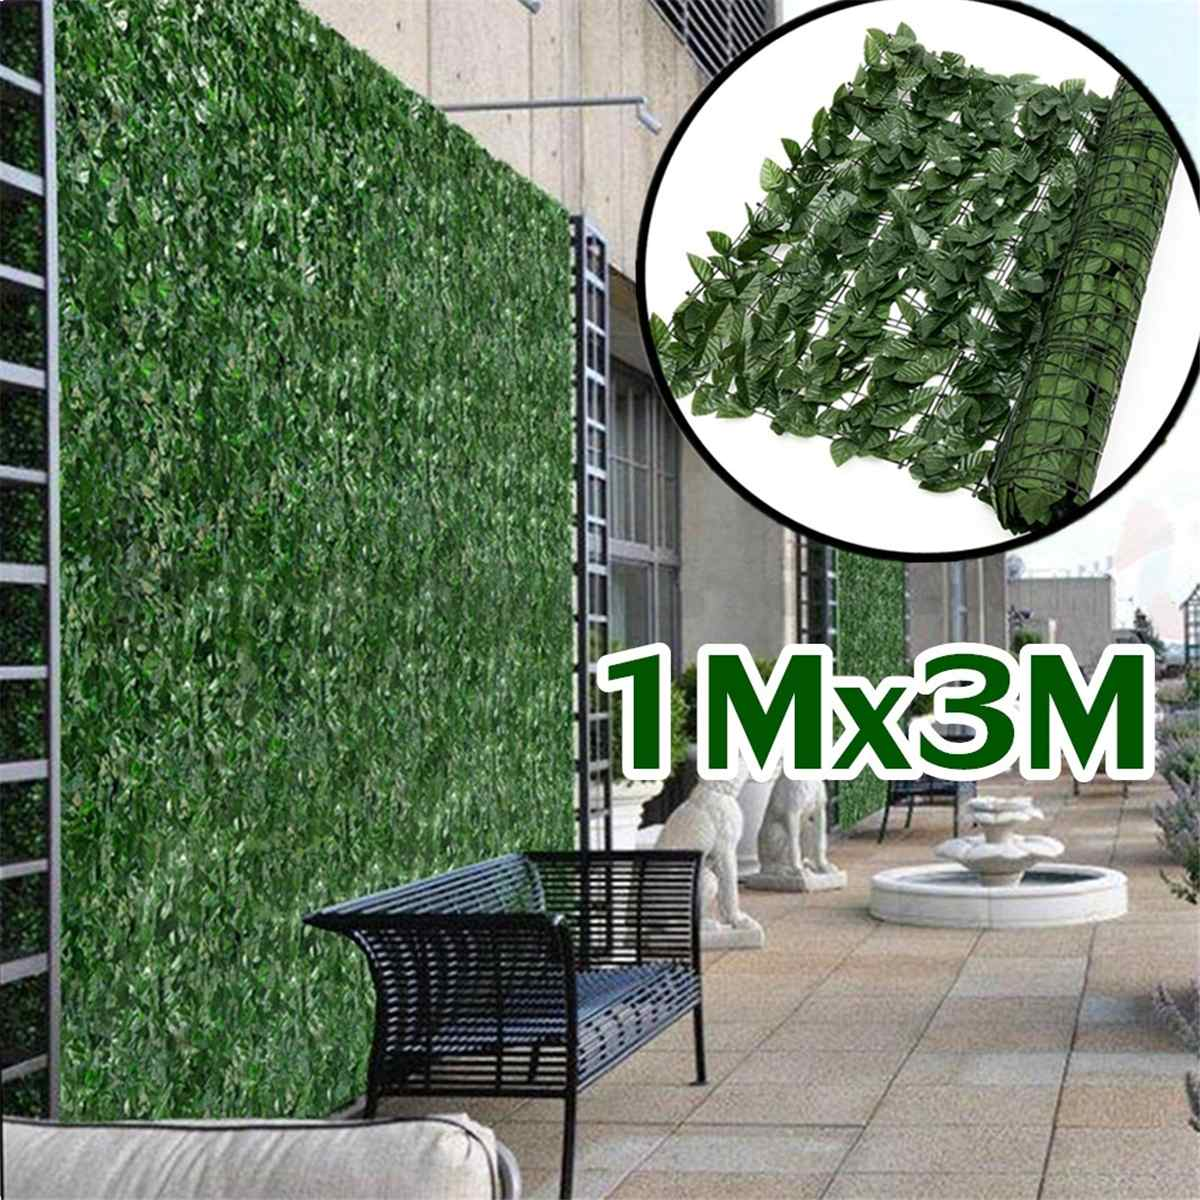 Us 28 0 42 Off Plant Wall Artificial Lawn Boxwood Hedge Garden Backyard Home Decor Simulation Grass Turf Rug Lawn Outdoor Flower Wall 1x3m In Sensor